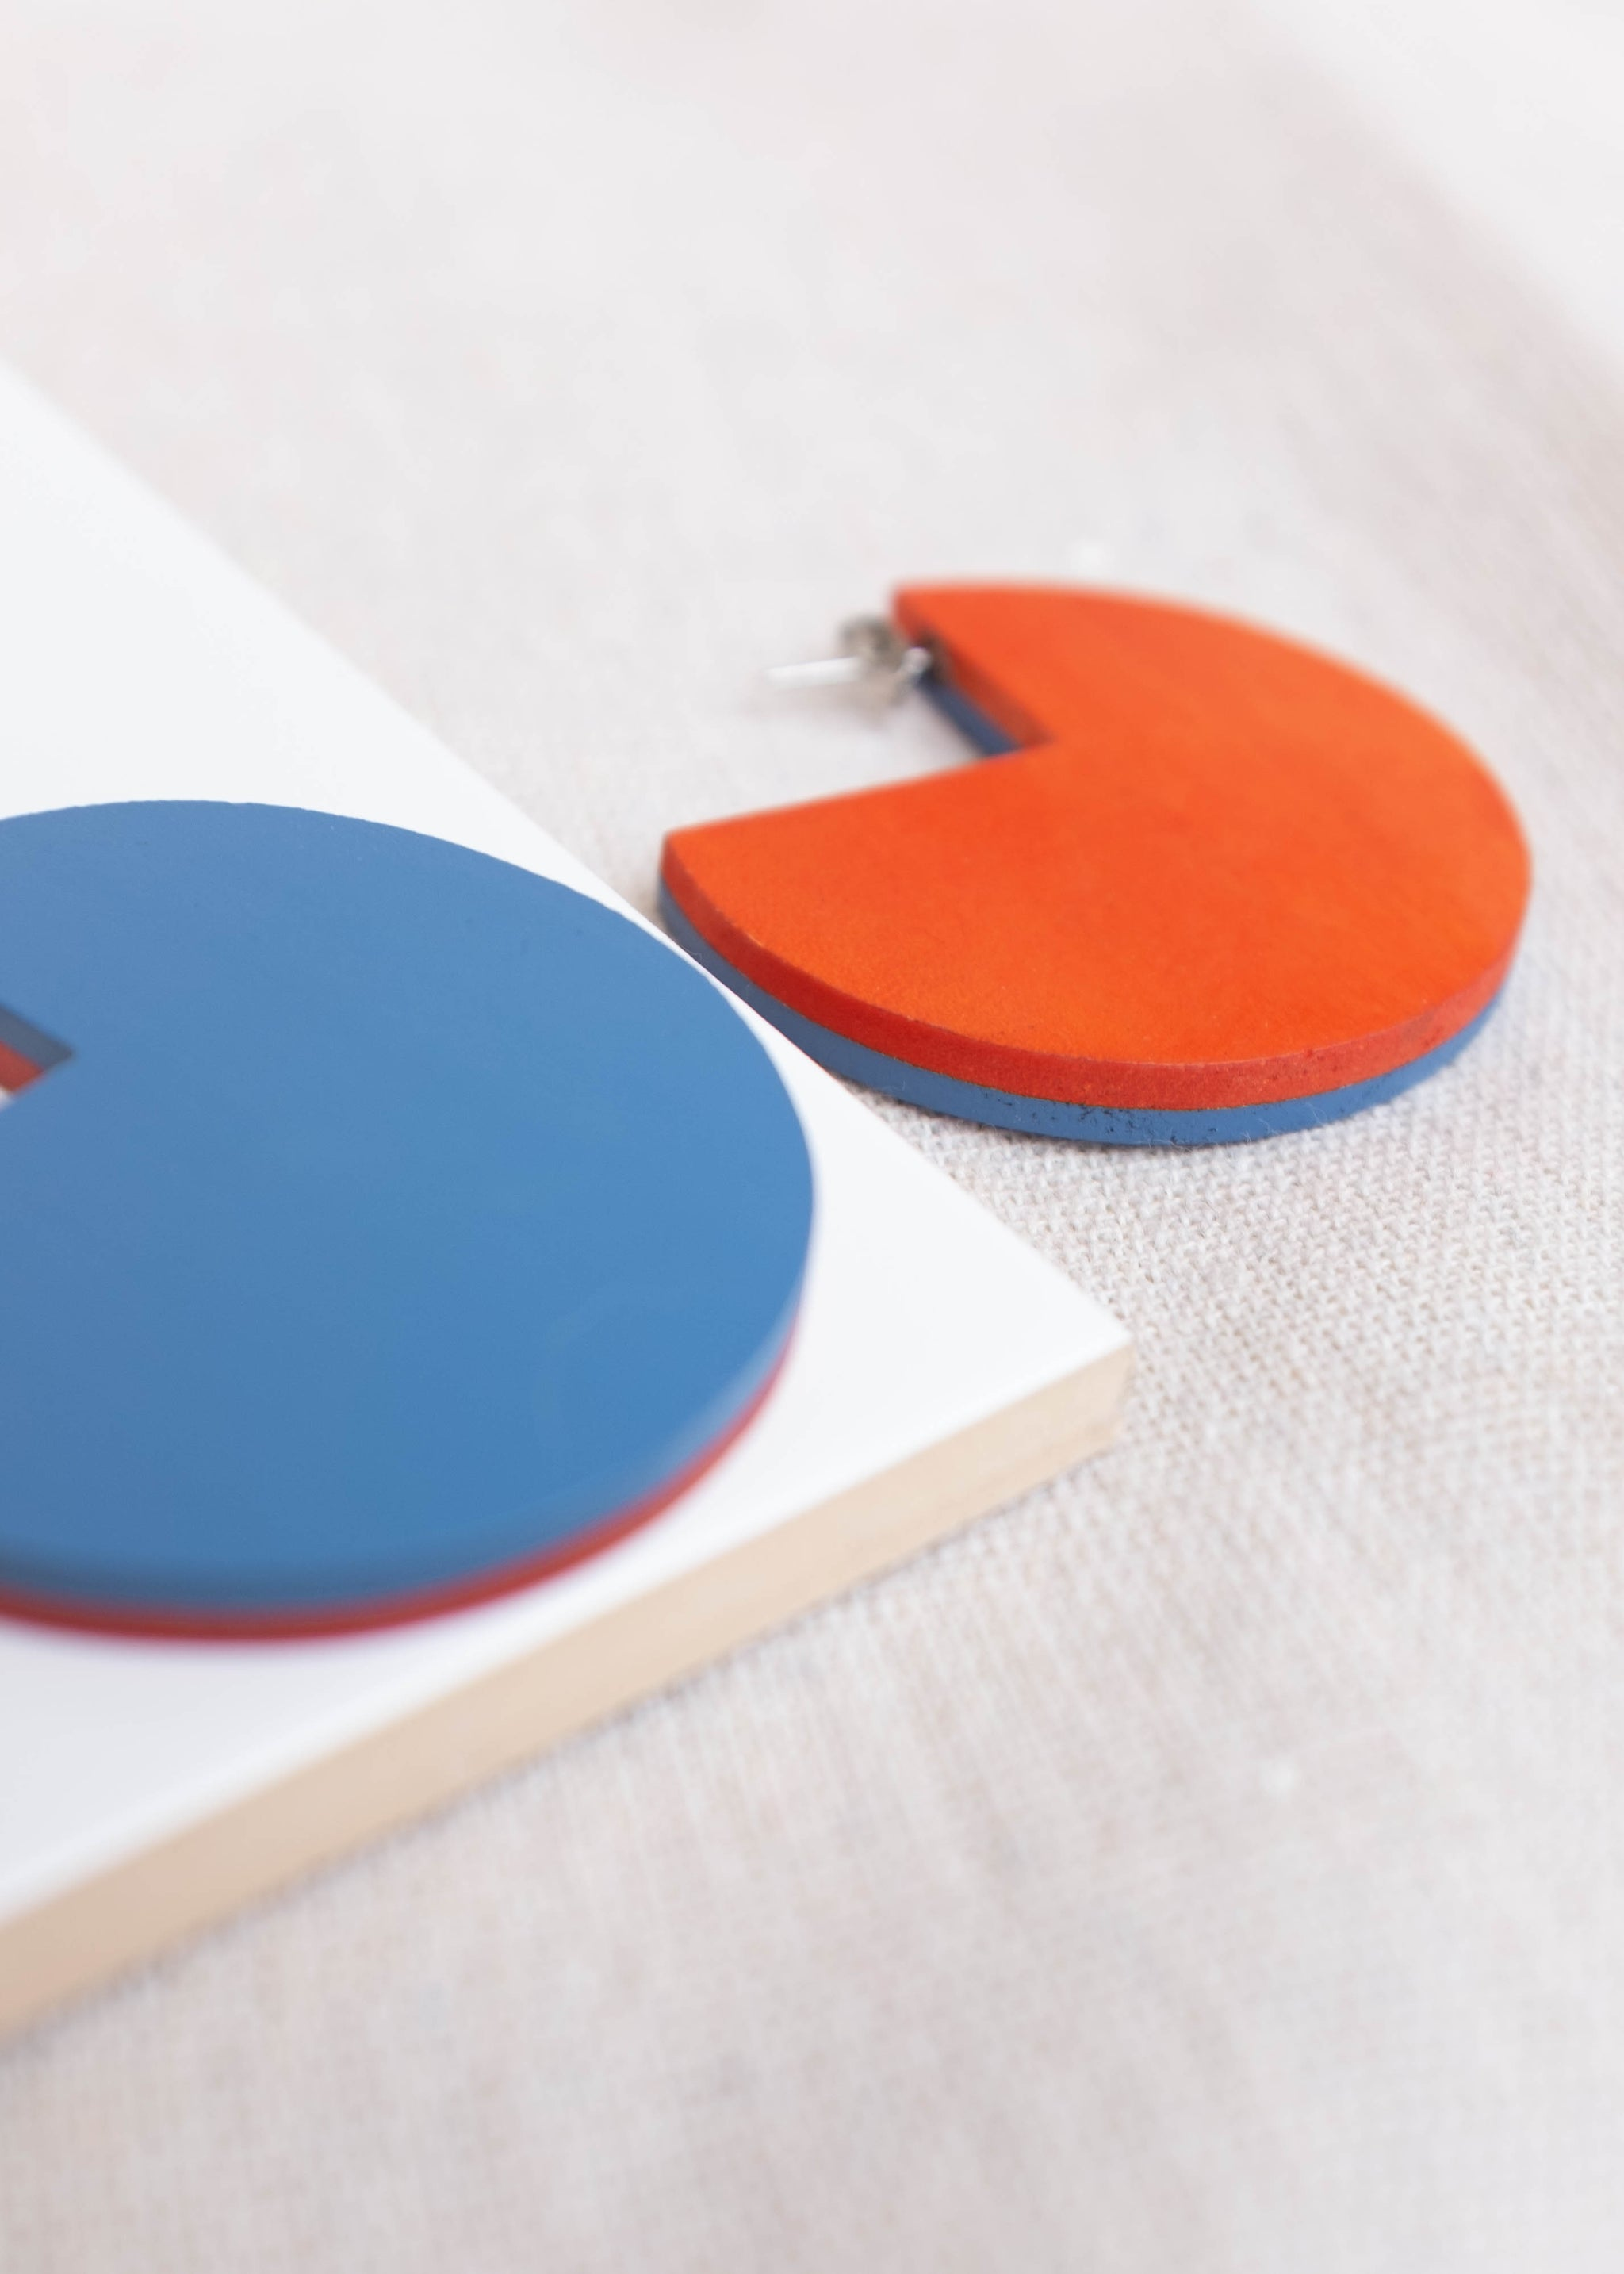 Detail view of circular, flat earrings in orange and blue.